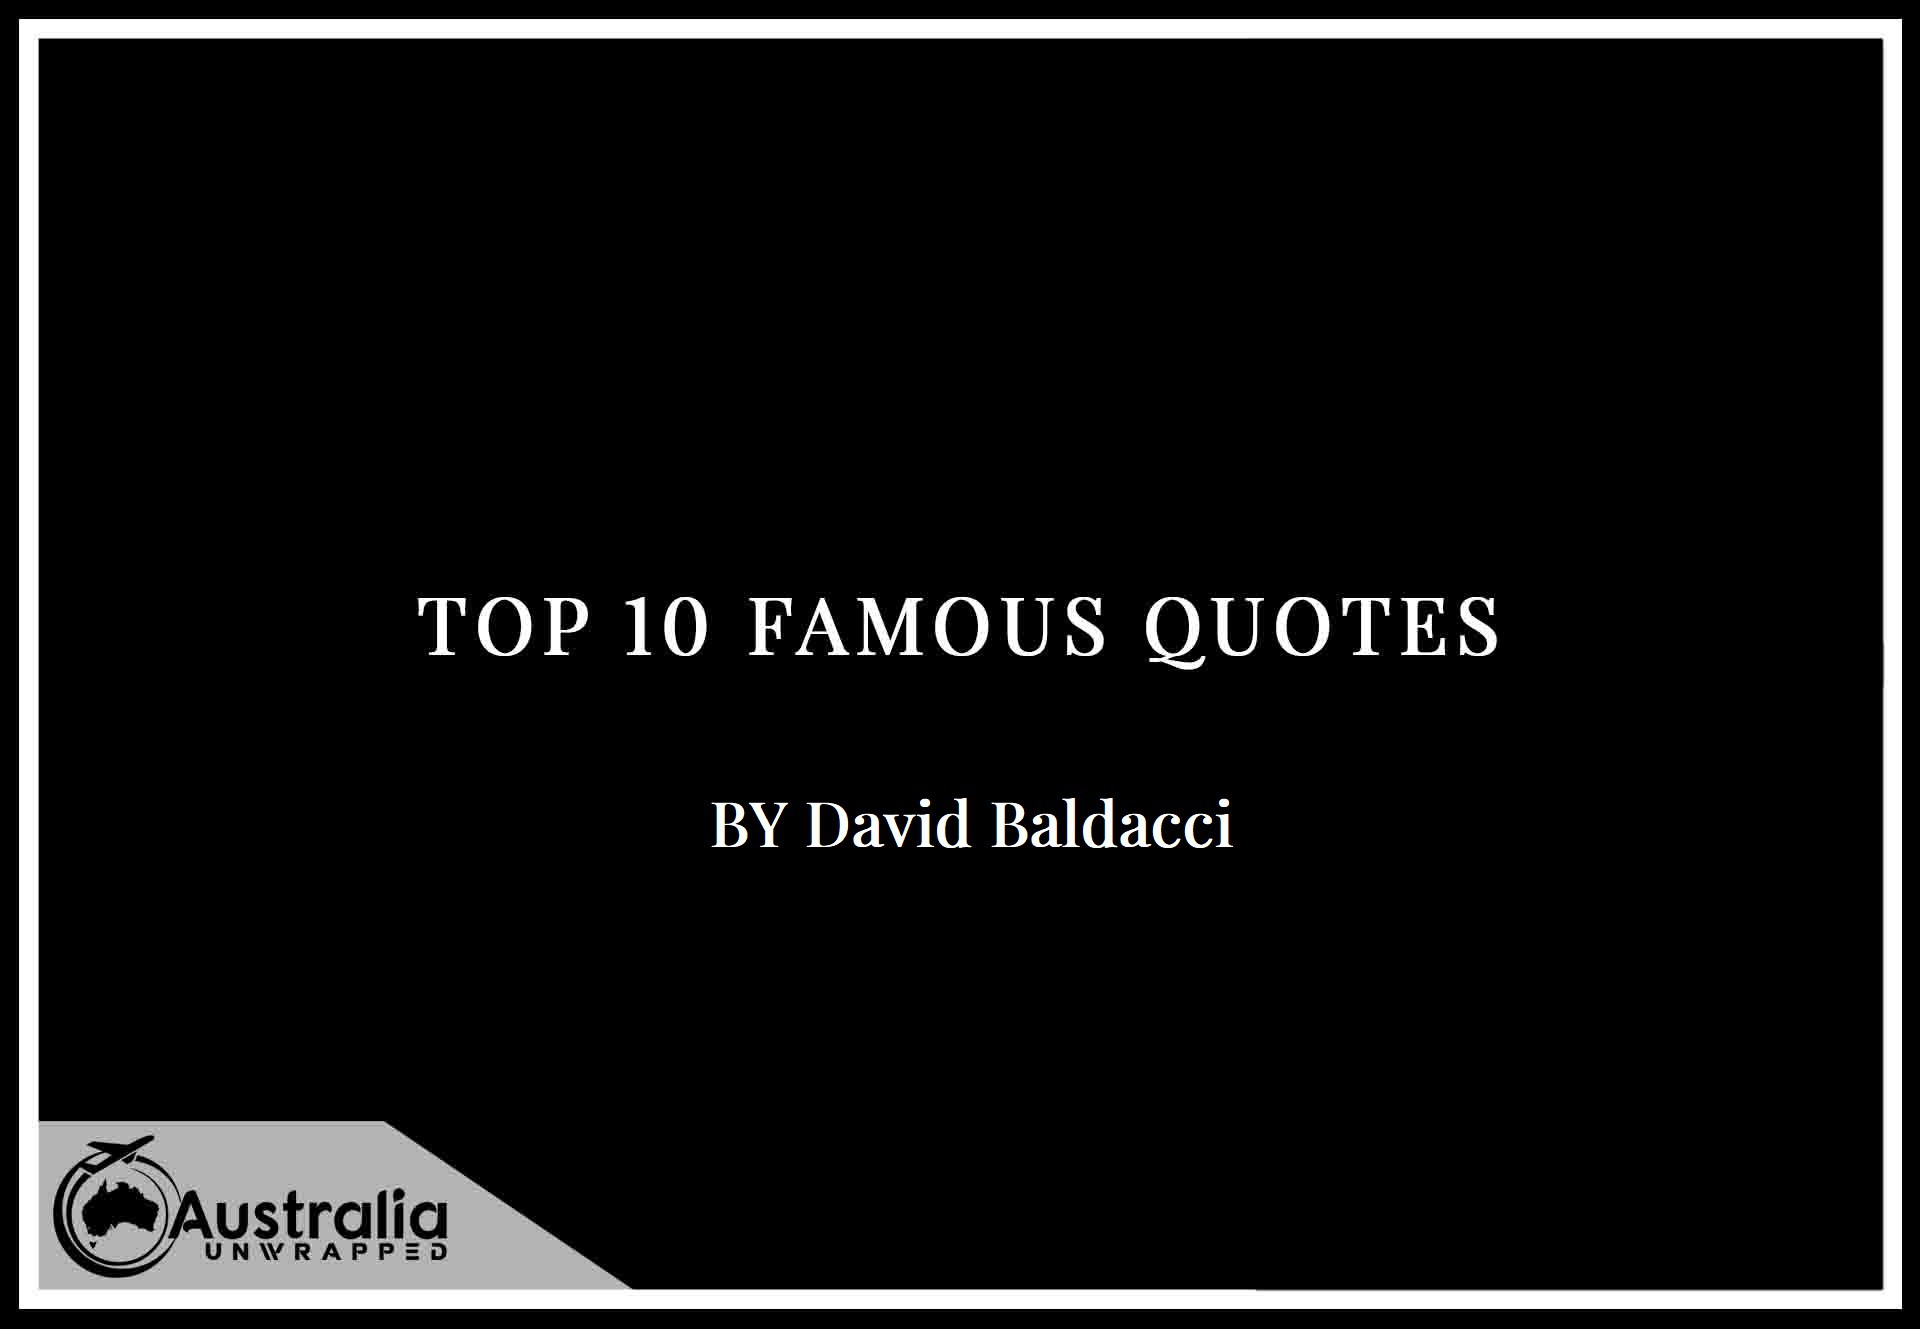 Top 10 Famous Quotes by Author David Baldacci